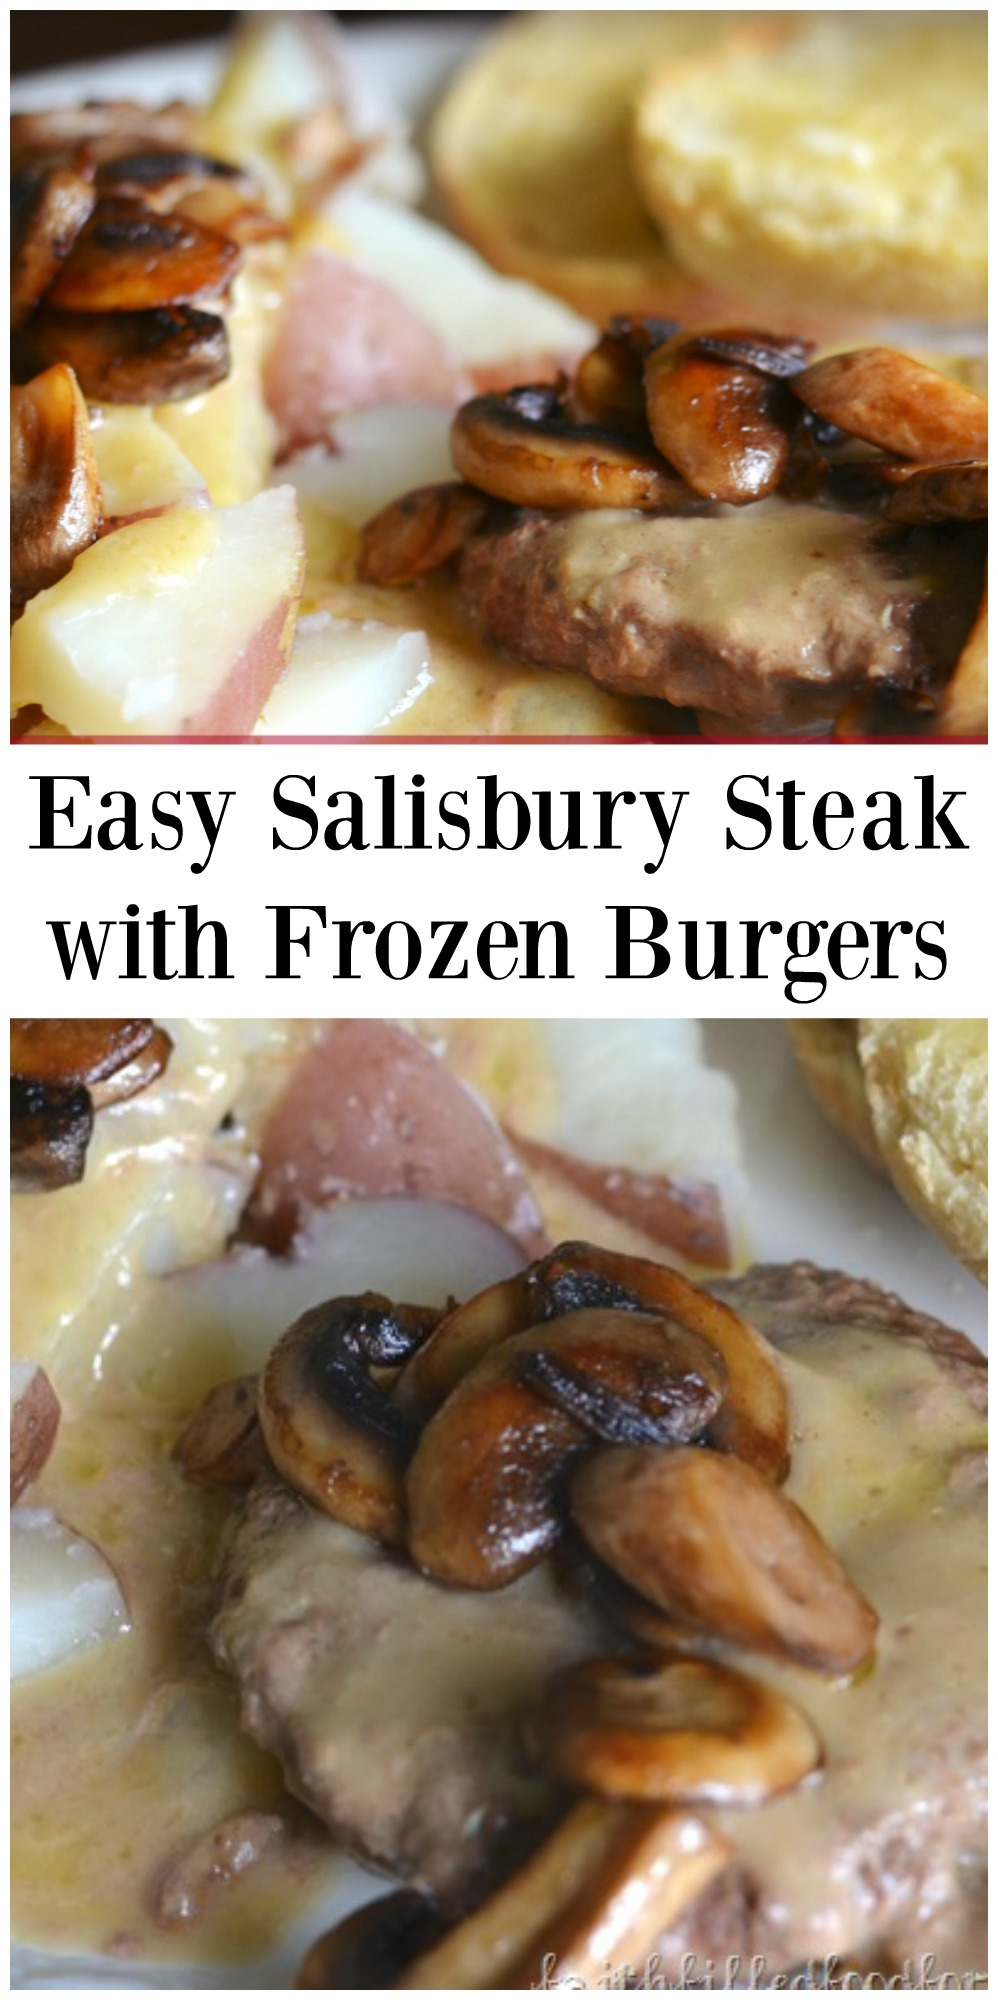 This easy Salisbury Steak made with frozen burgers is SO EASY and quick. It's also a very inexpensive and a family fave meal! #frozenburgerrecipe #easyrecipes